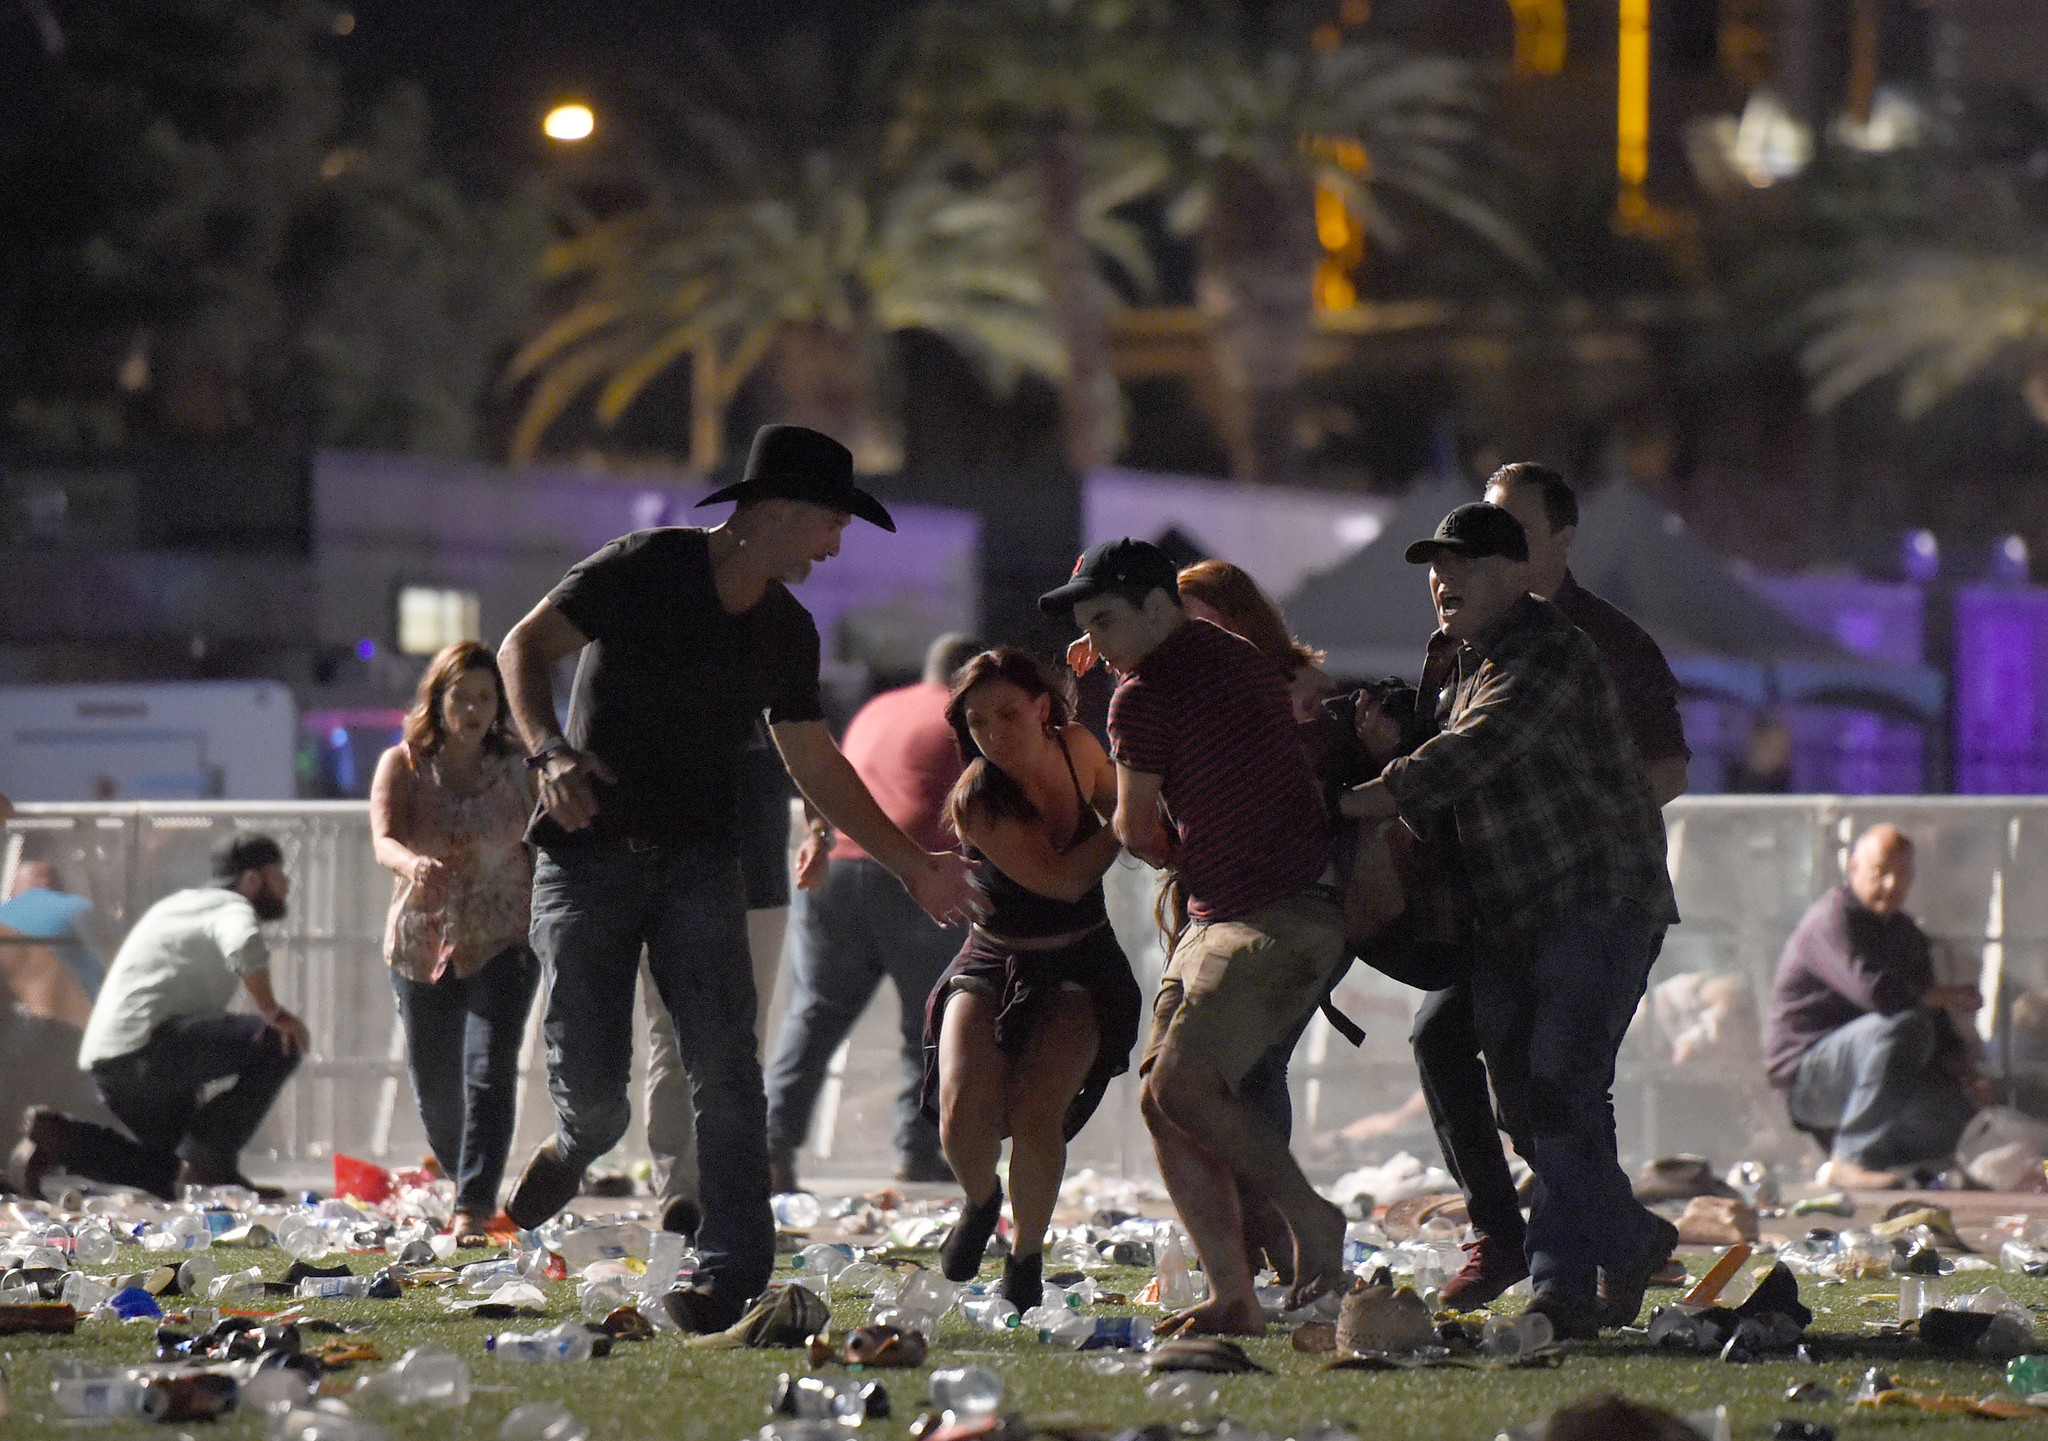 Survival Mode Kicked In After Las Vegas Shooting Chicago Area Tourists Say Chicago Tribune